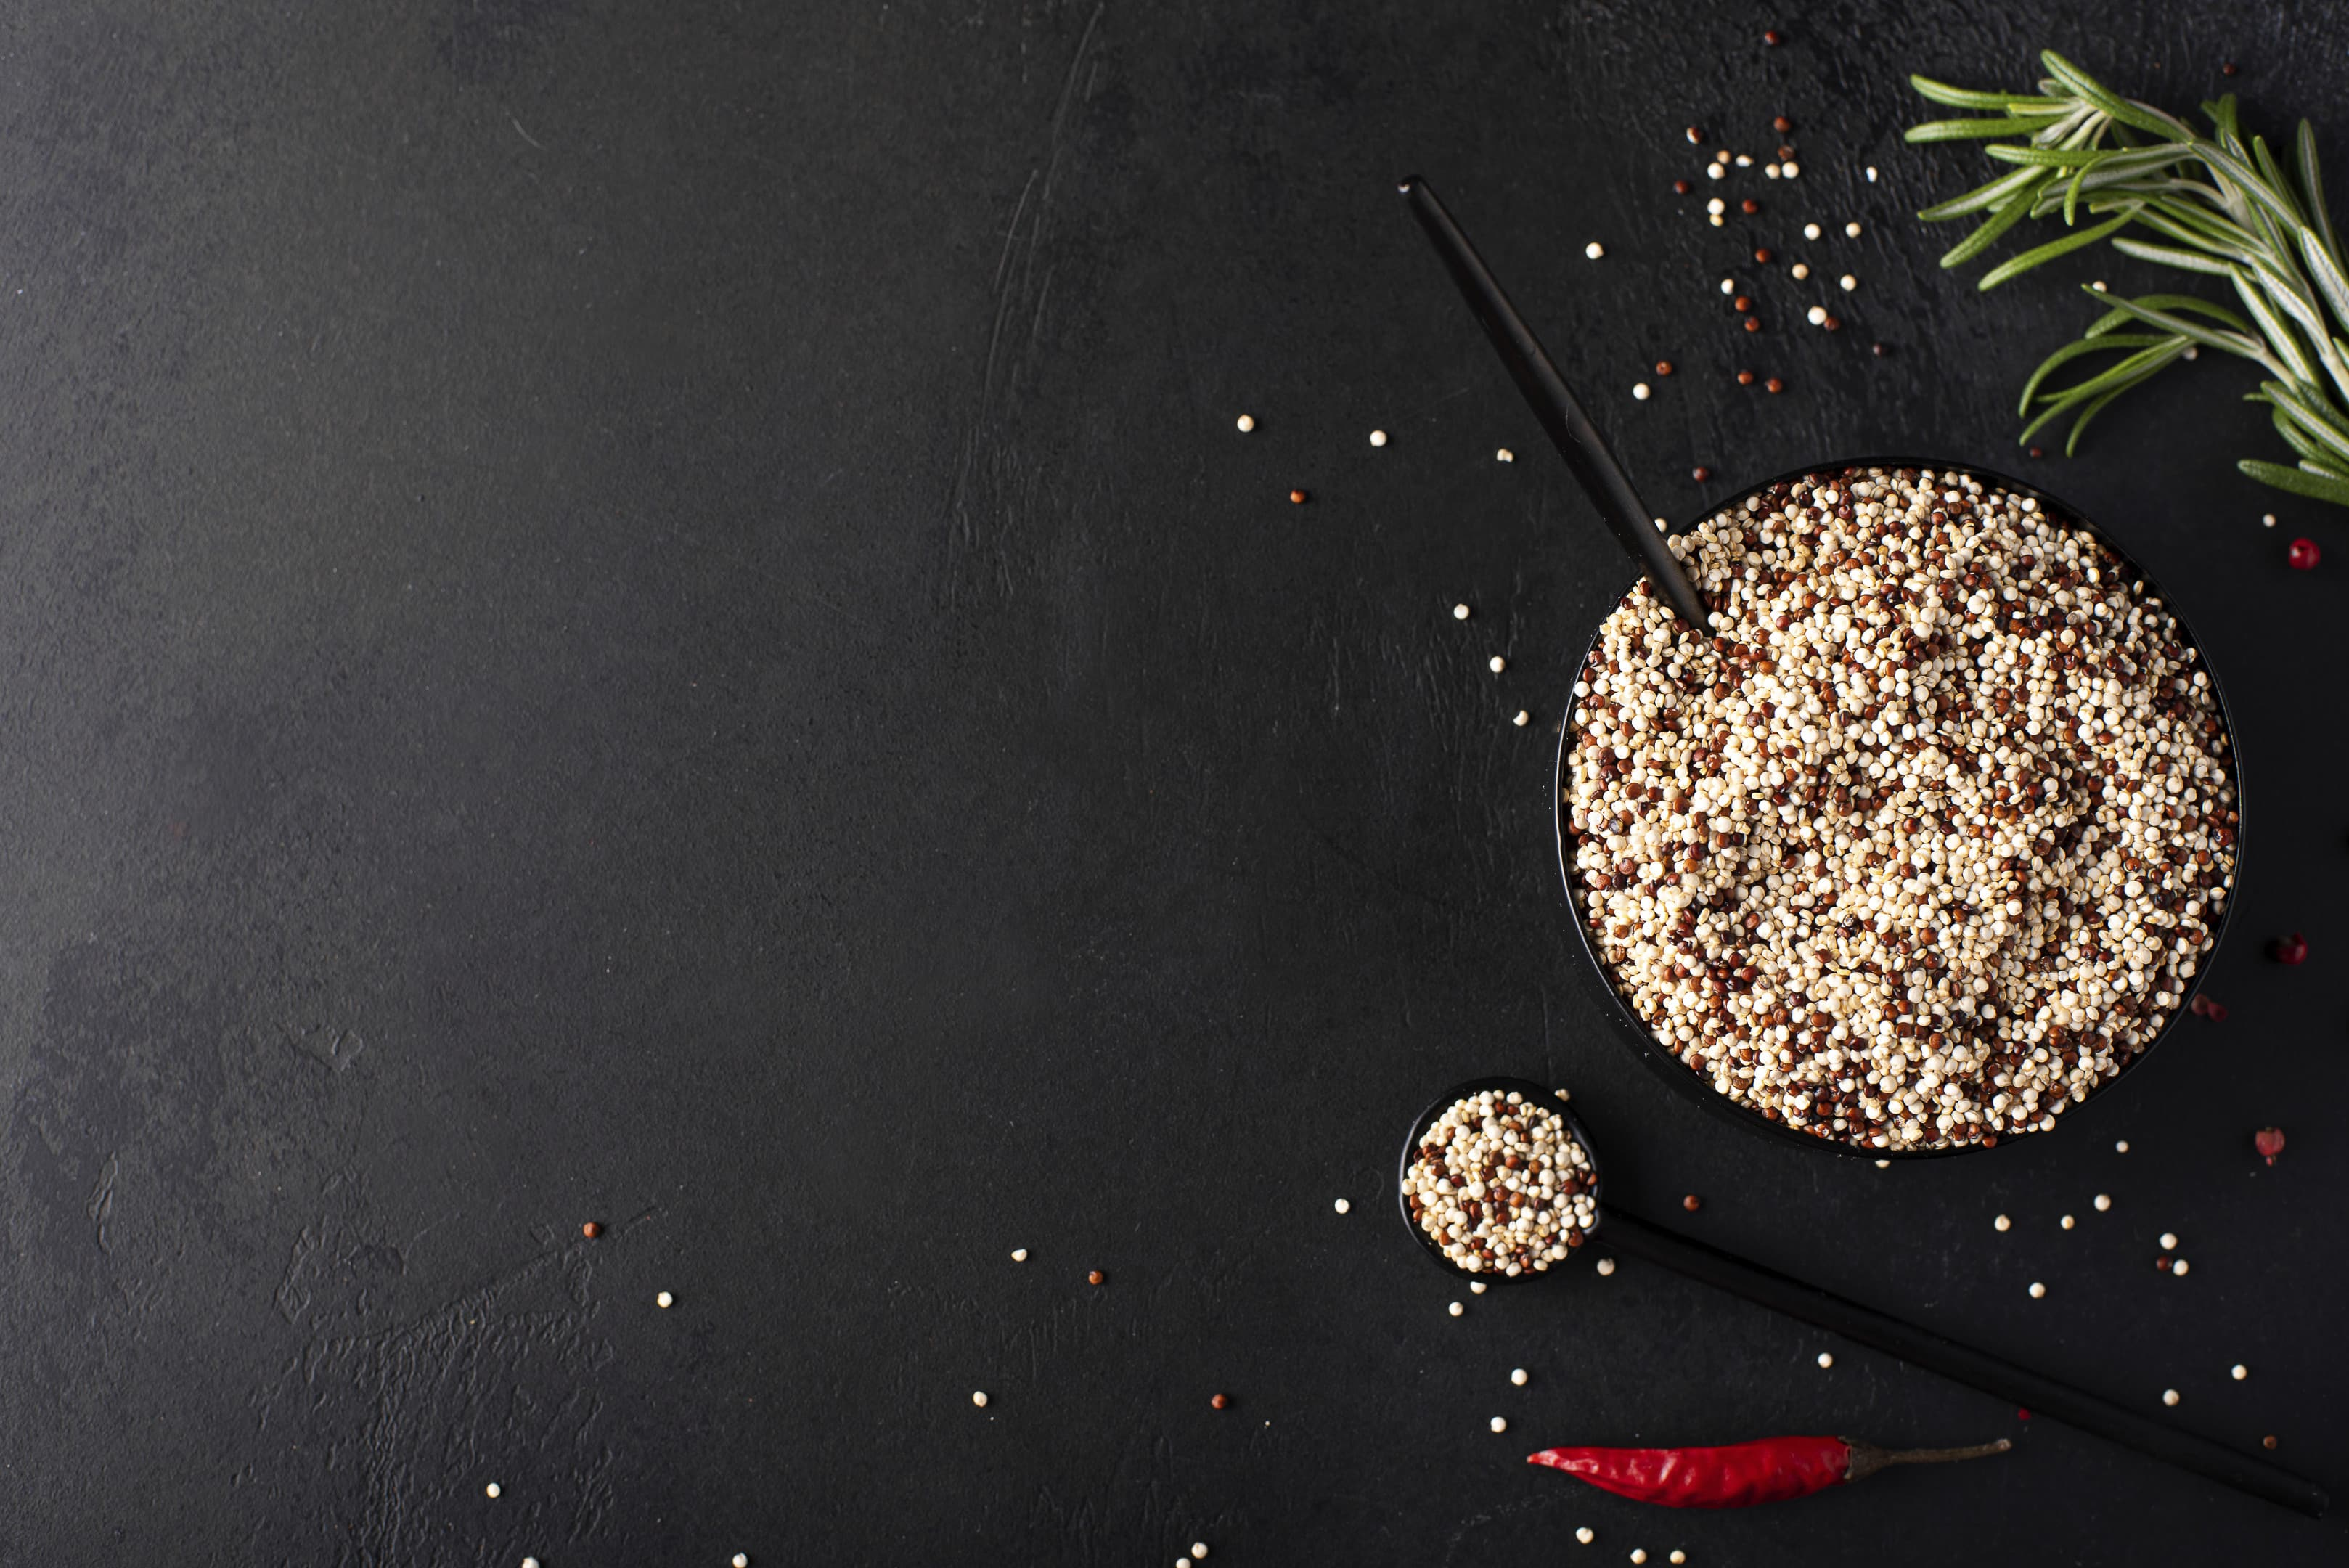 White and red quinoa grits with spices in black bowl